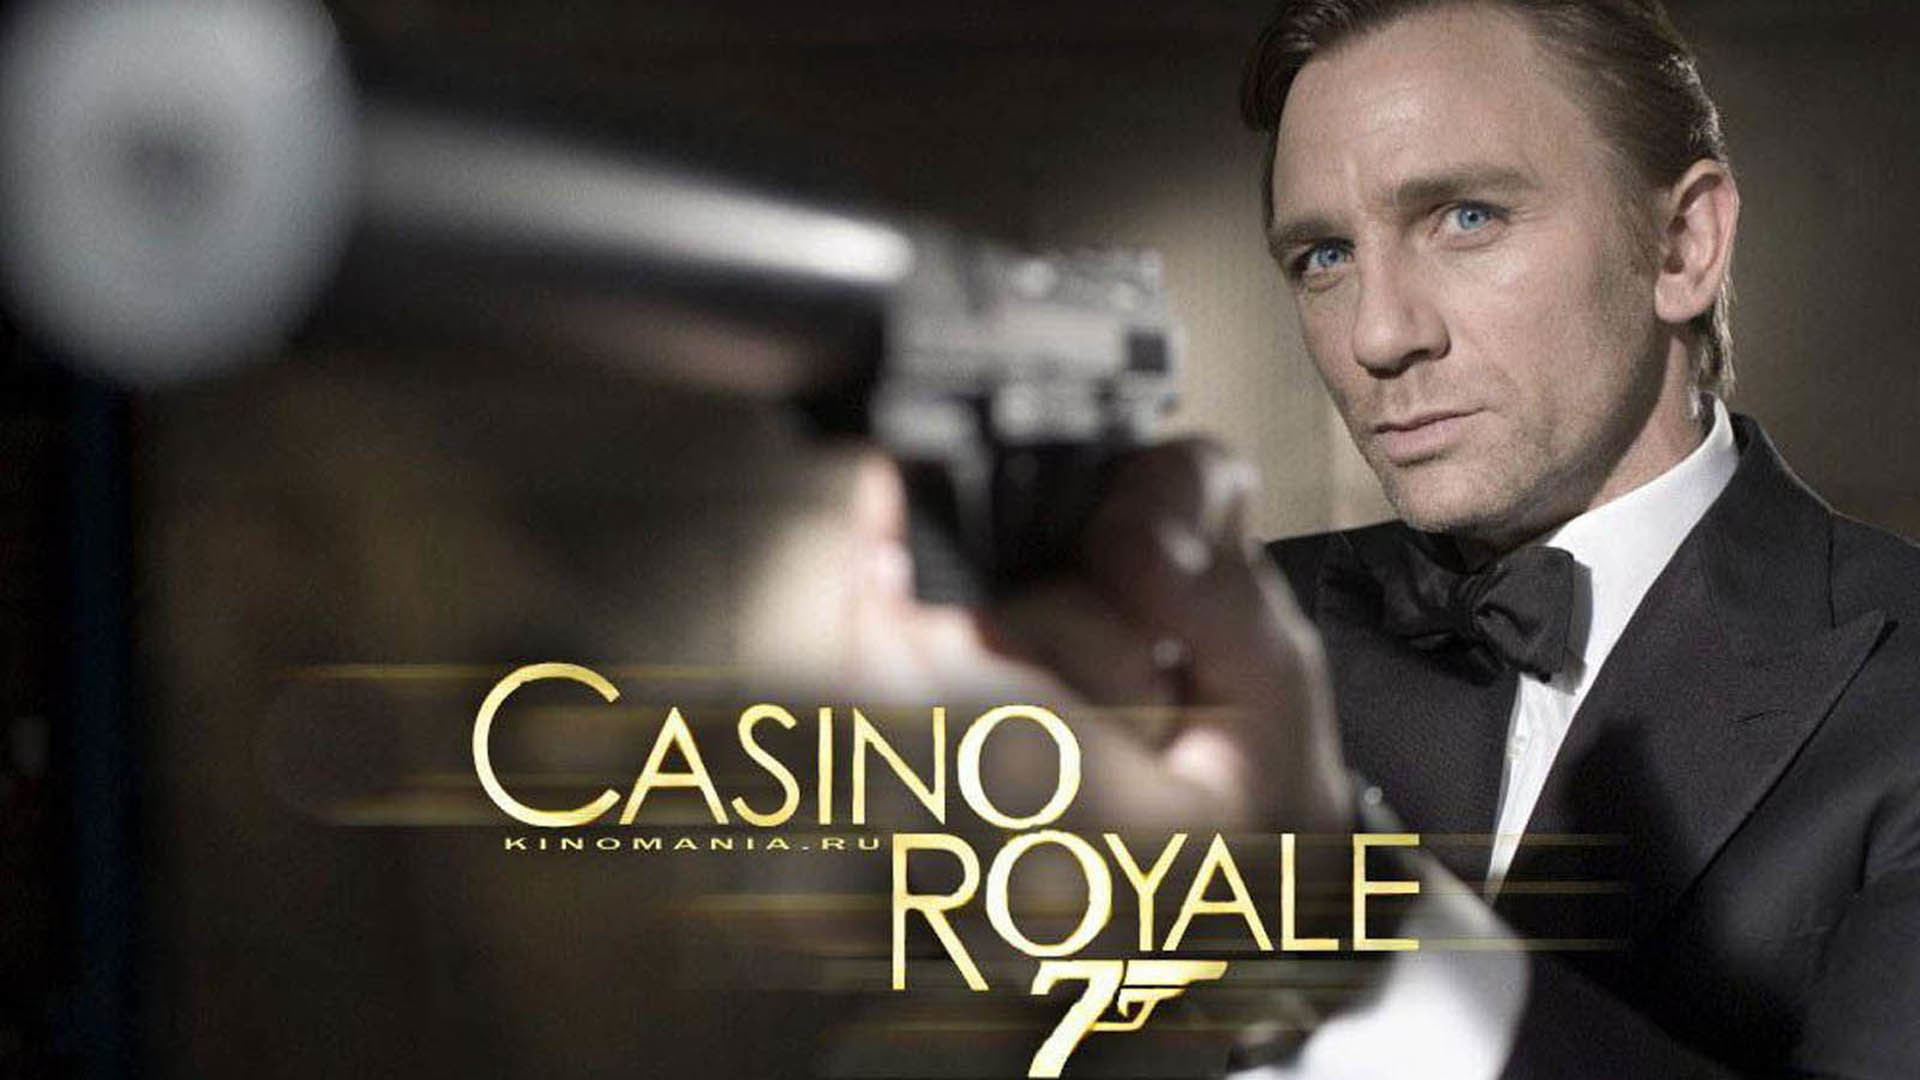 1920x1080 Casino Royale Poster